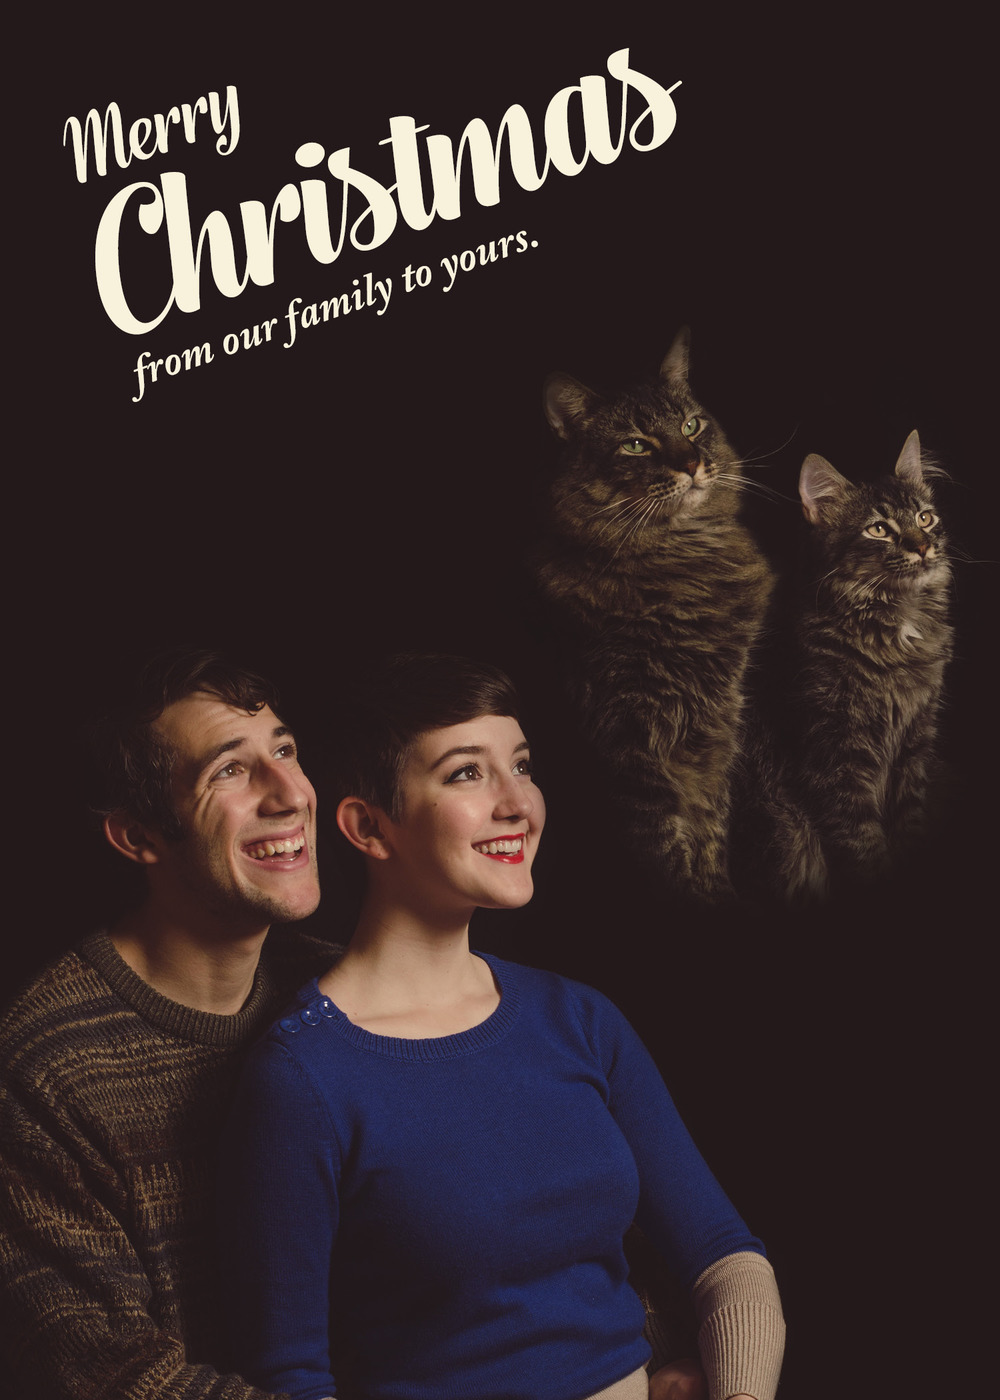 Retro Cat Christmas Card - COPYRIGHT Regan Shorter